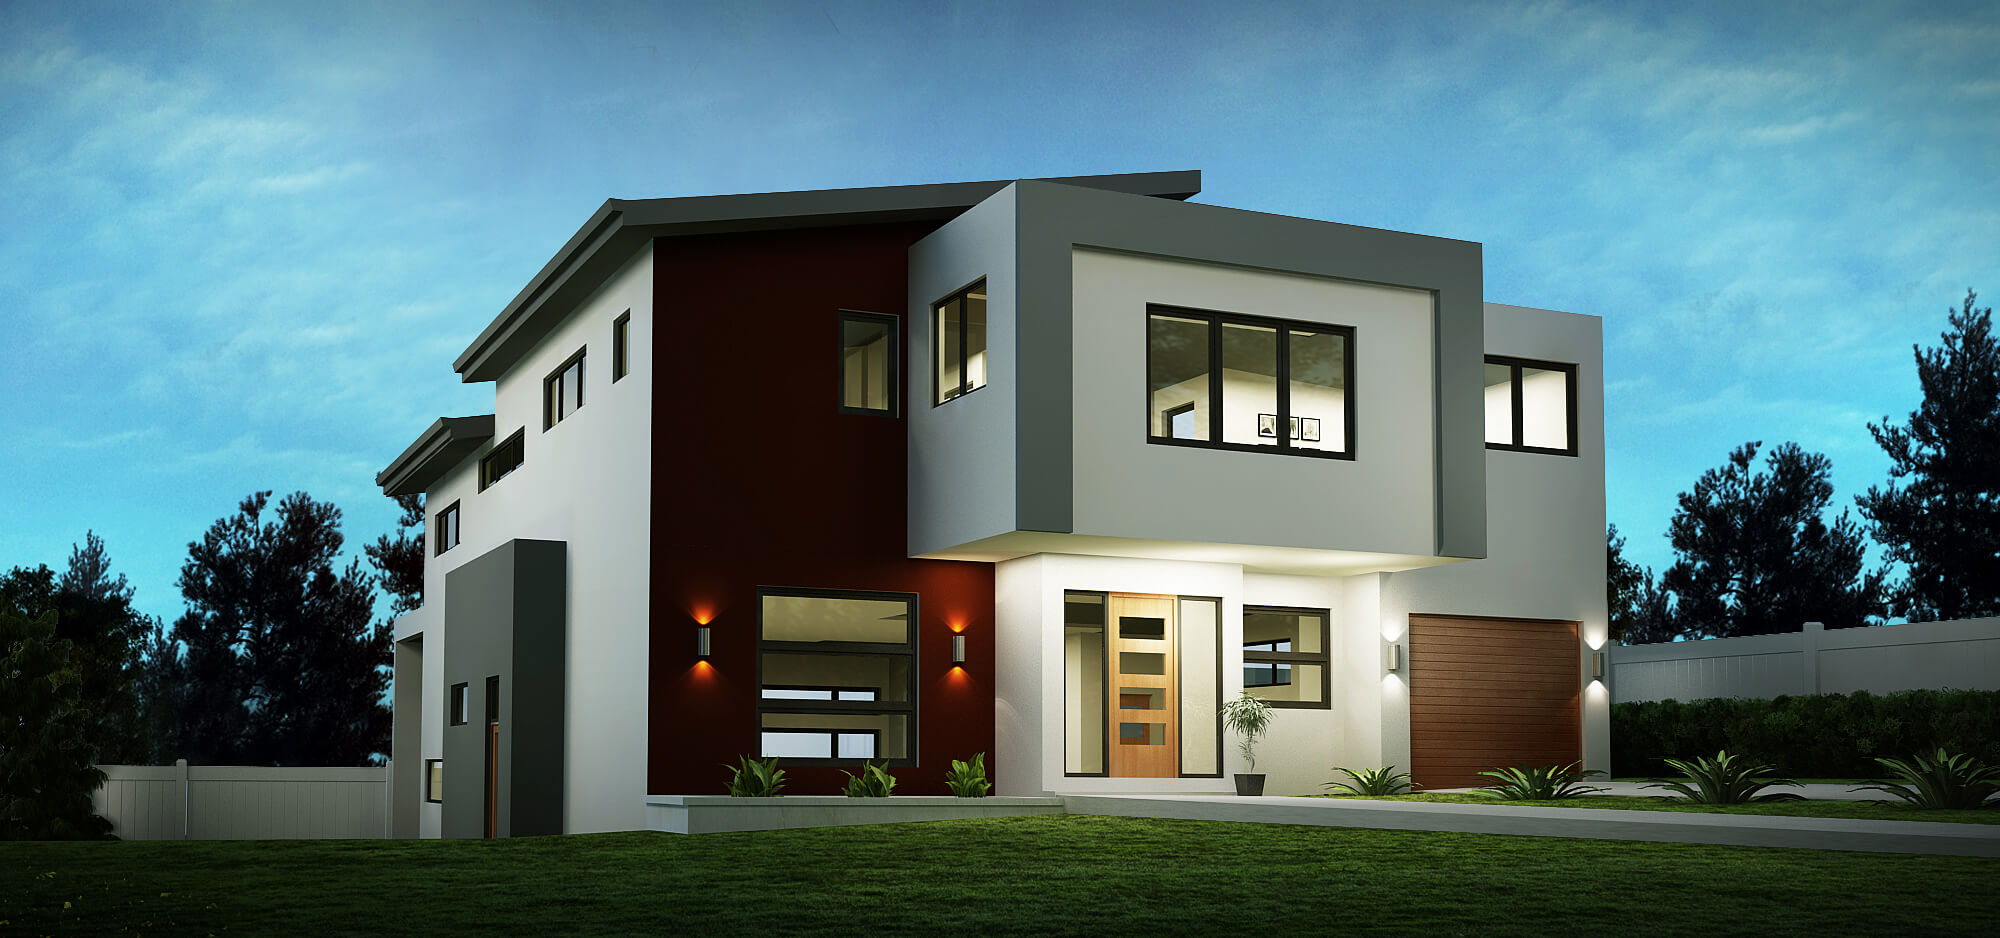 Sloping house block designs custom home designs for Custom design house